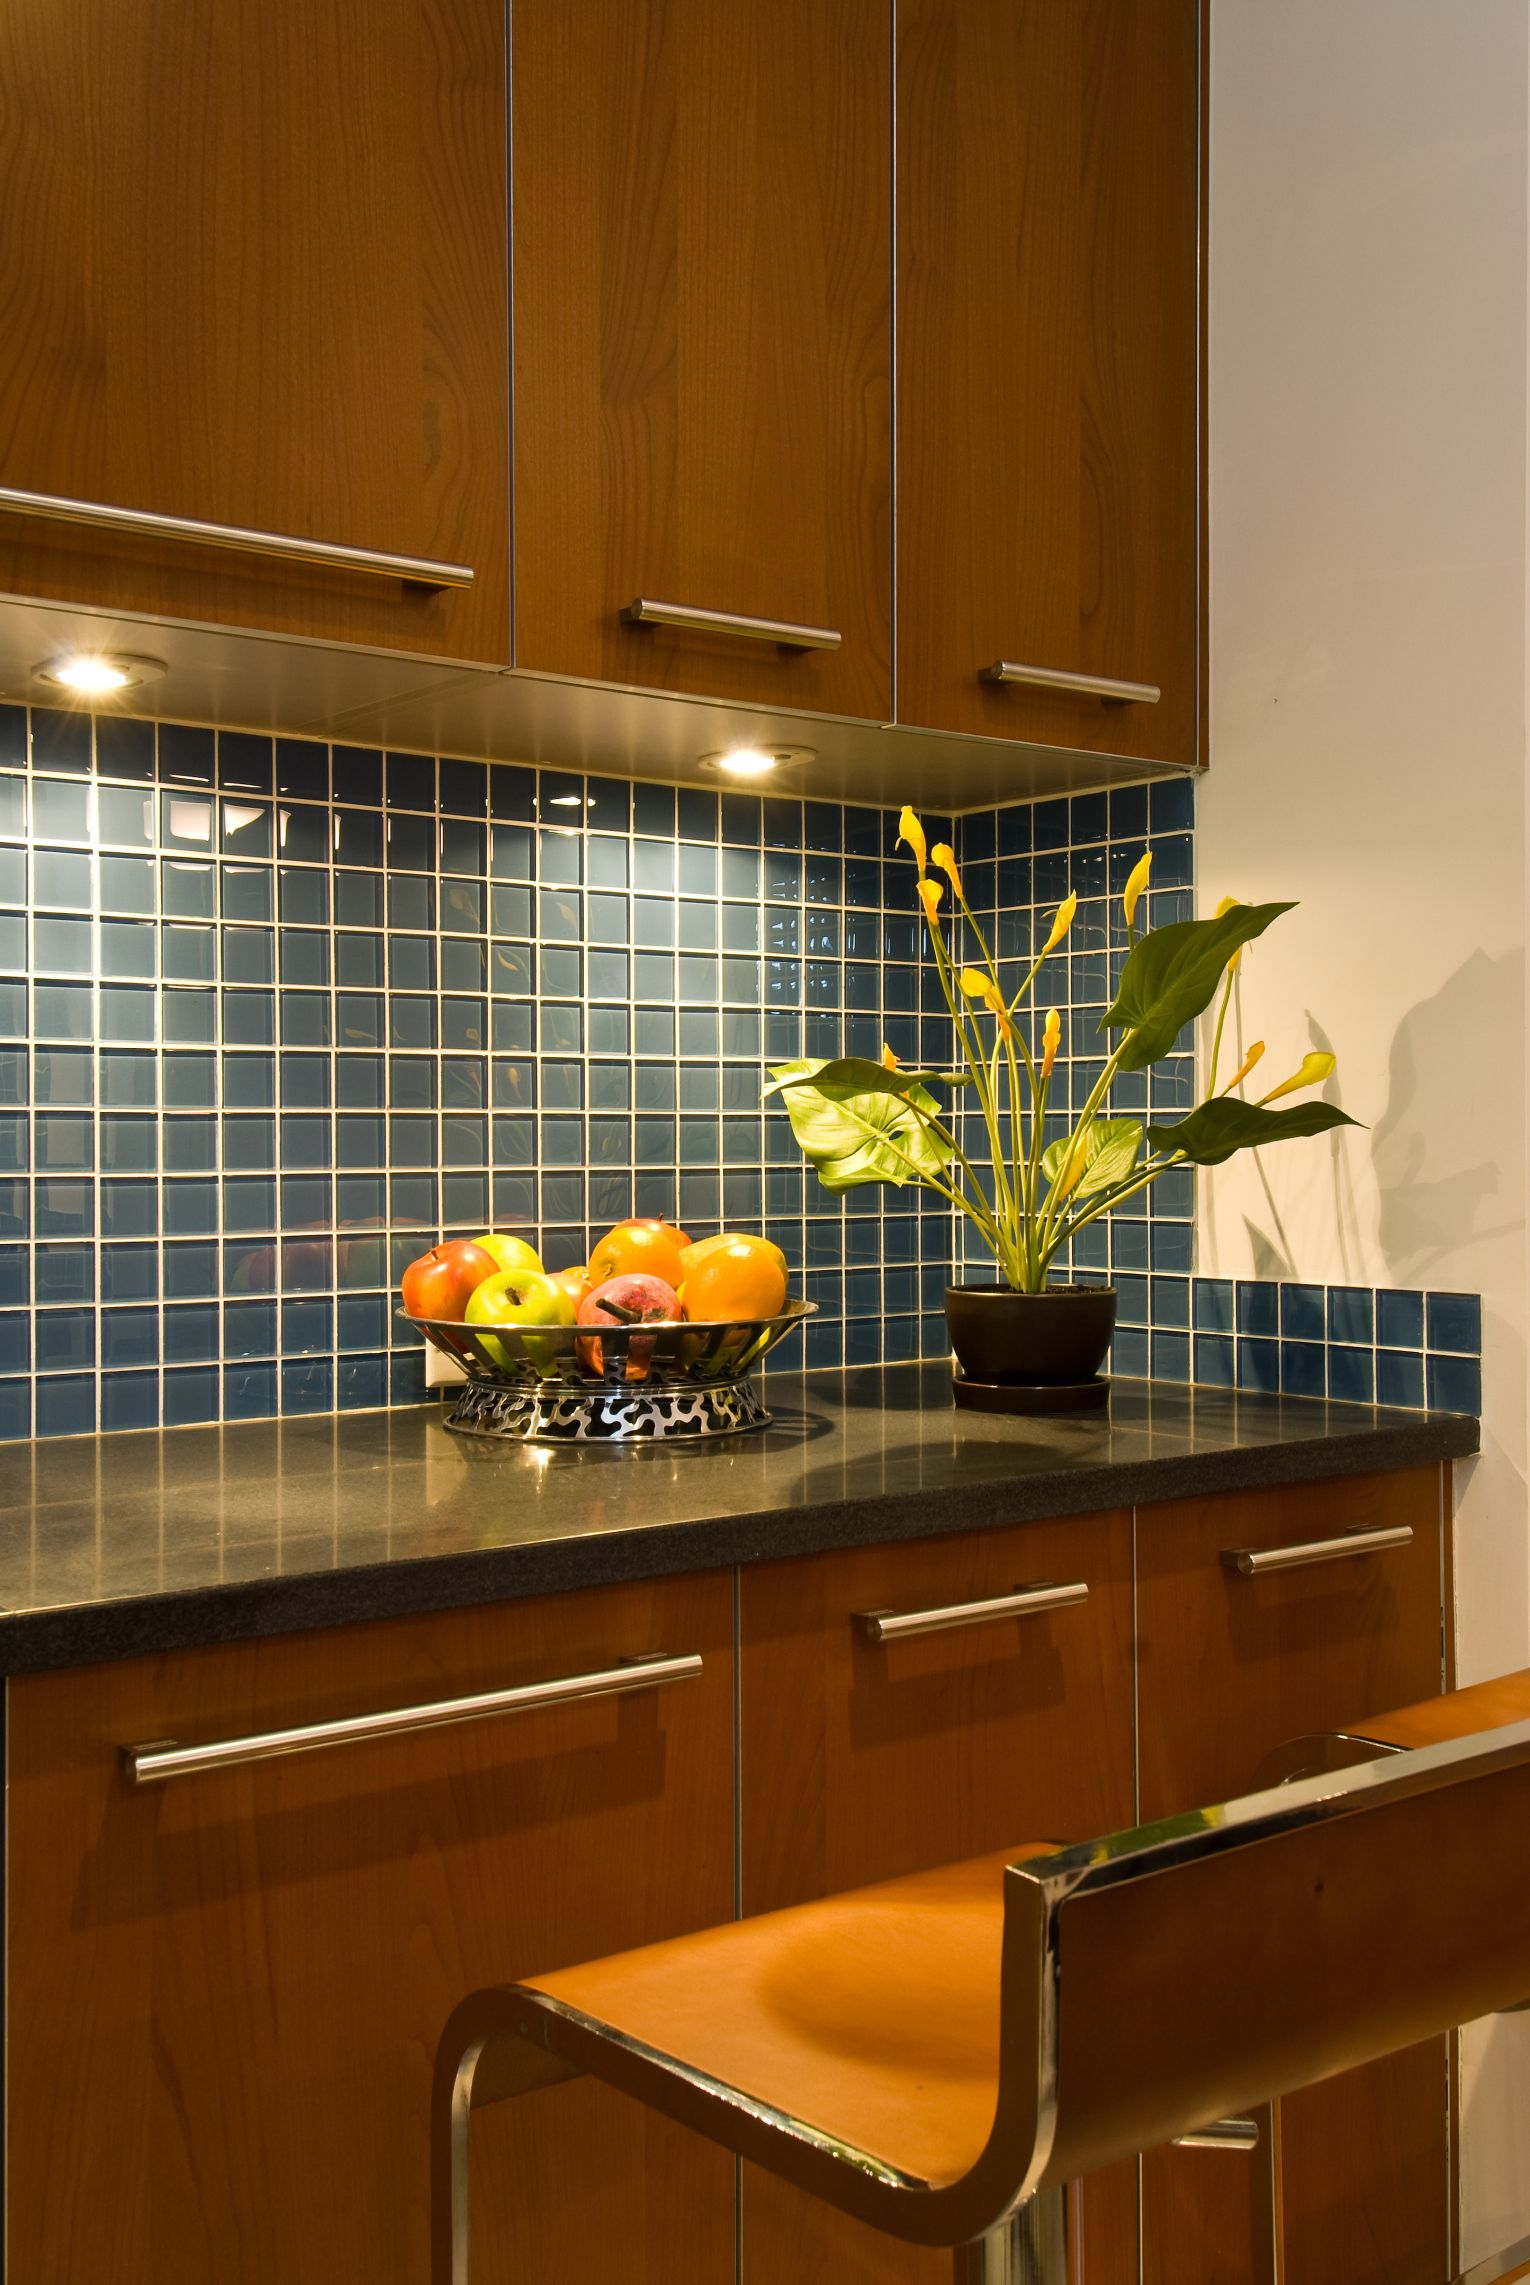 Tips On Hiding Wires For Under Cabinet Lighting Simple Kitchen Design Kitchen Remodel Small Clean Kitchen Cabinets